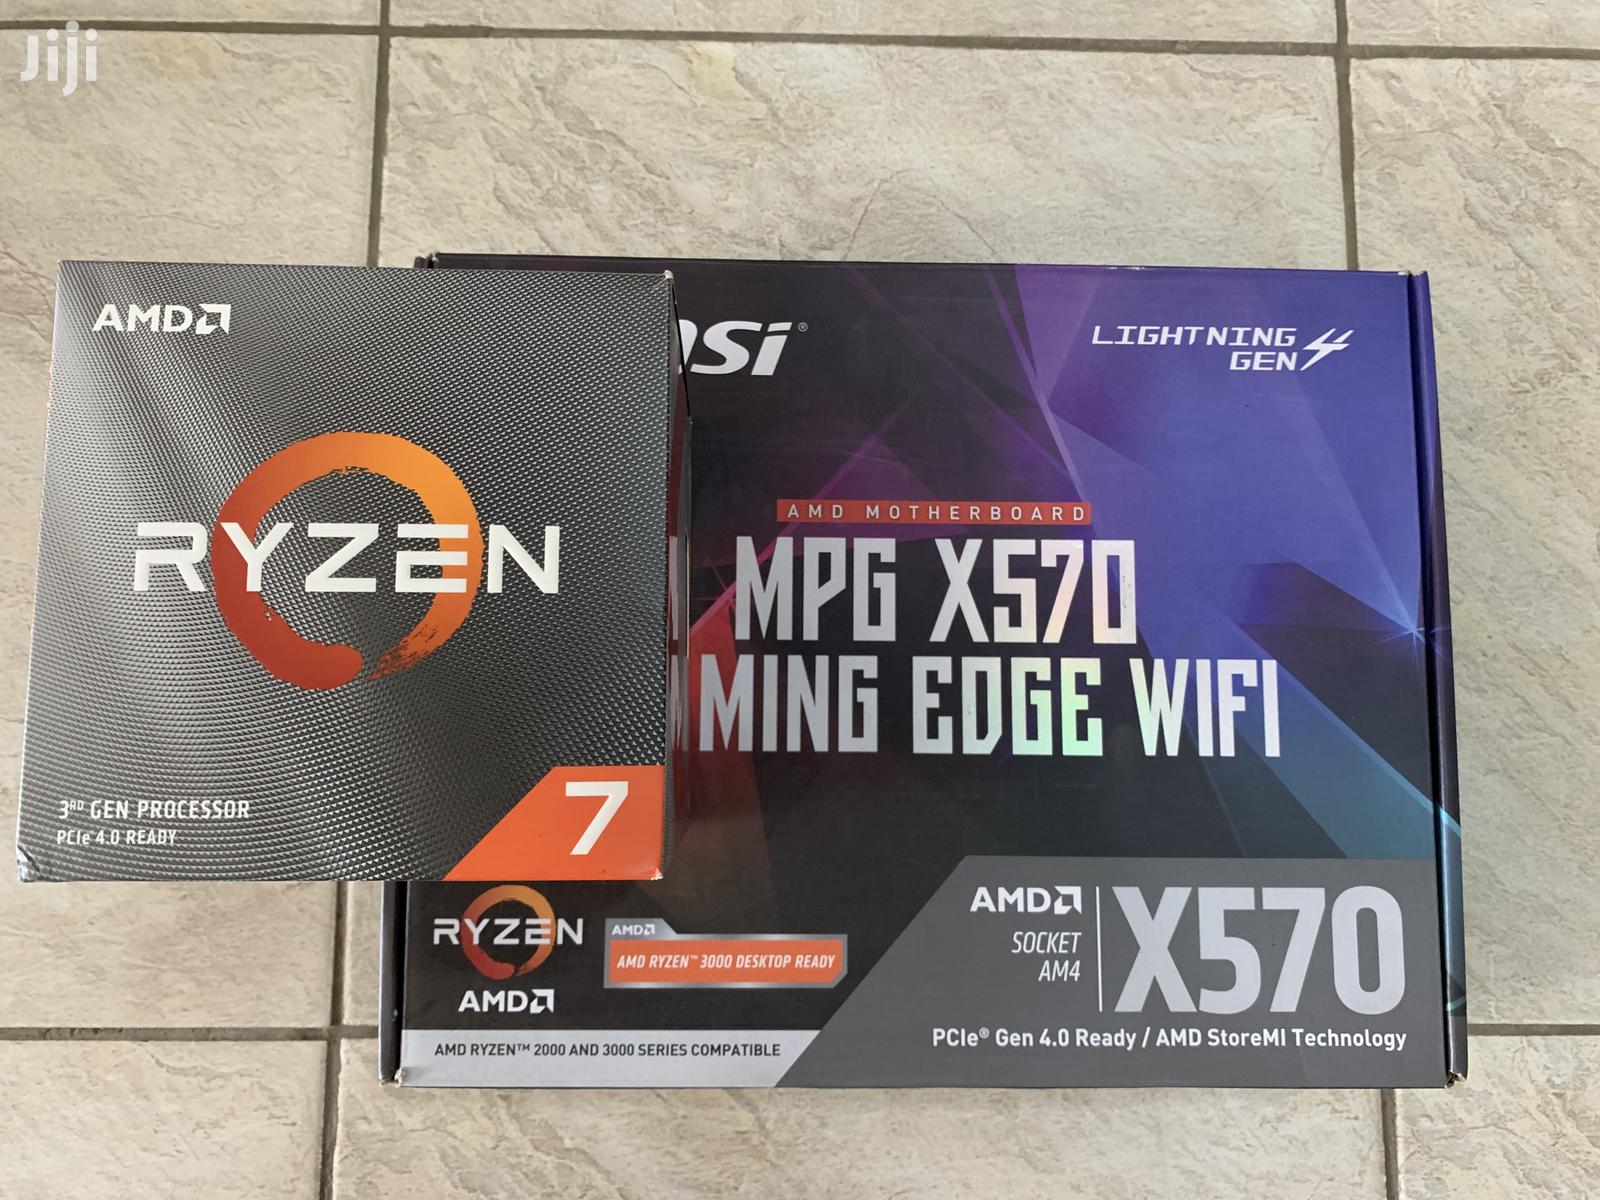 Amd Ryzen 3800x Cpu W/ Msi MPG X570 Motherboard | Computer Hardware for sale in South Kaneshie, Greater Accra, Ghana